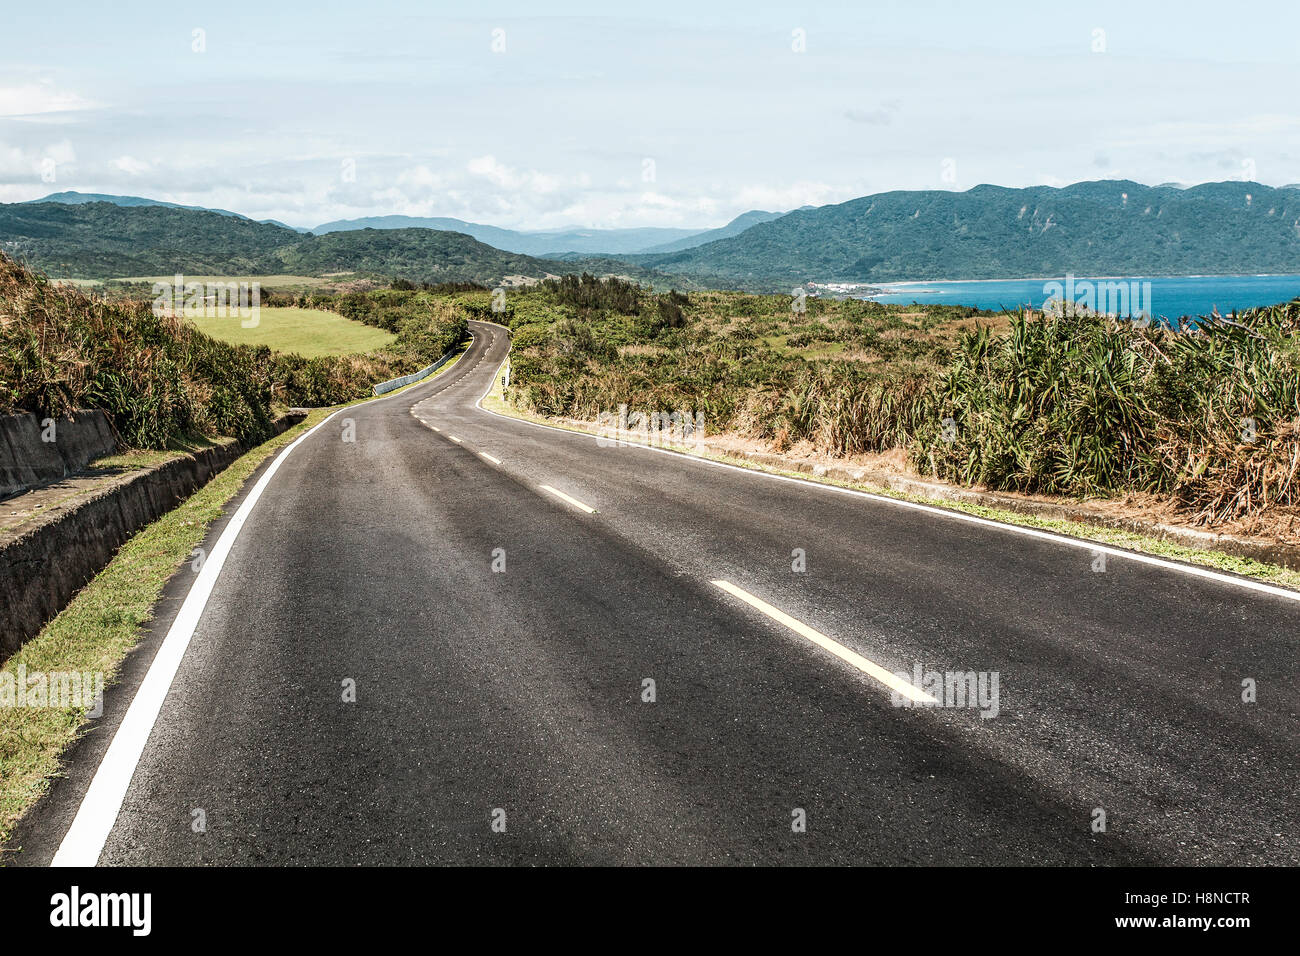 Highway in Taiwan, China - Stock Image